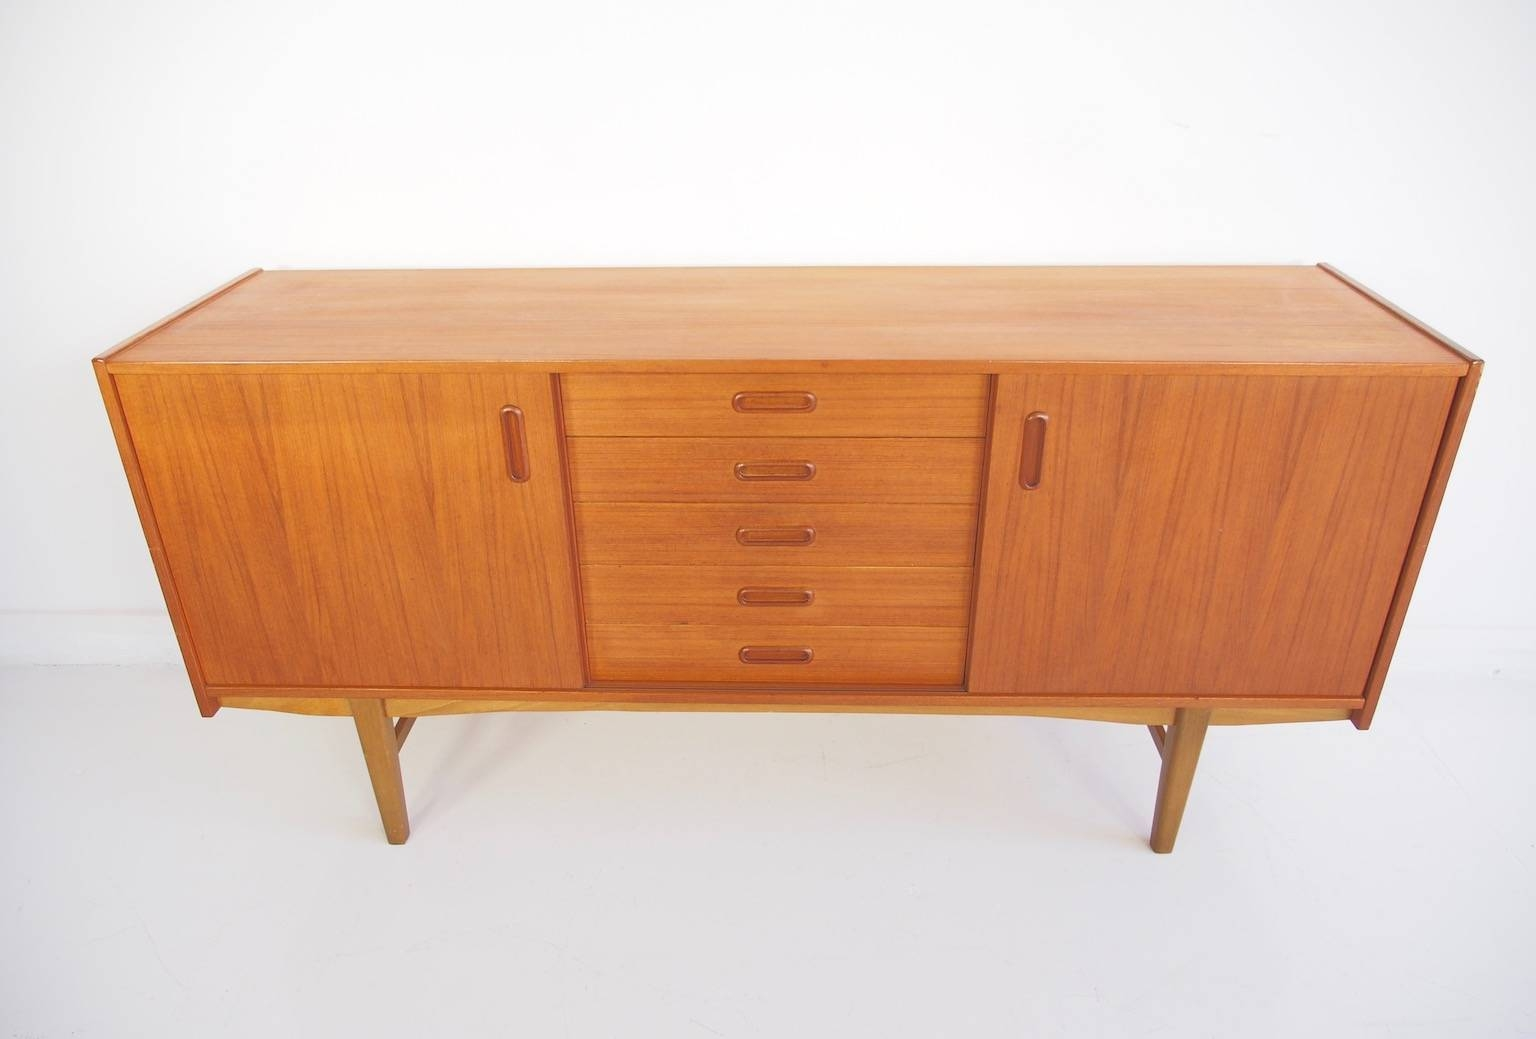 Scandinavian Modern Teak Sideboard With Shelves And Drawers, 1960s With Regard To Scandinavian Sideboards (View 12 of 15)